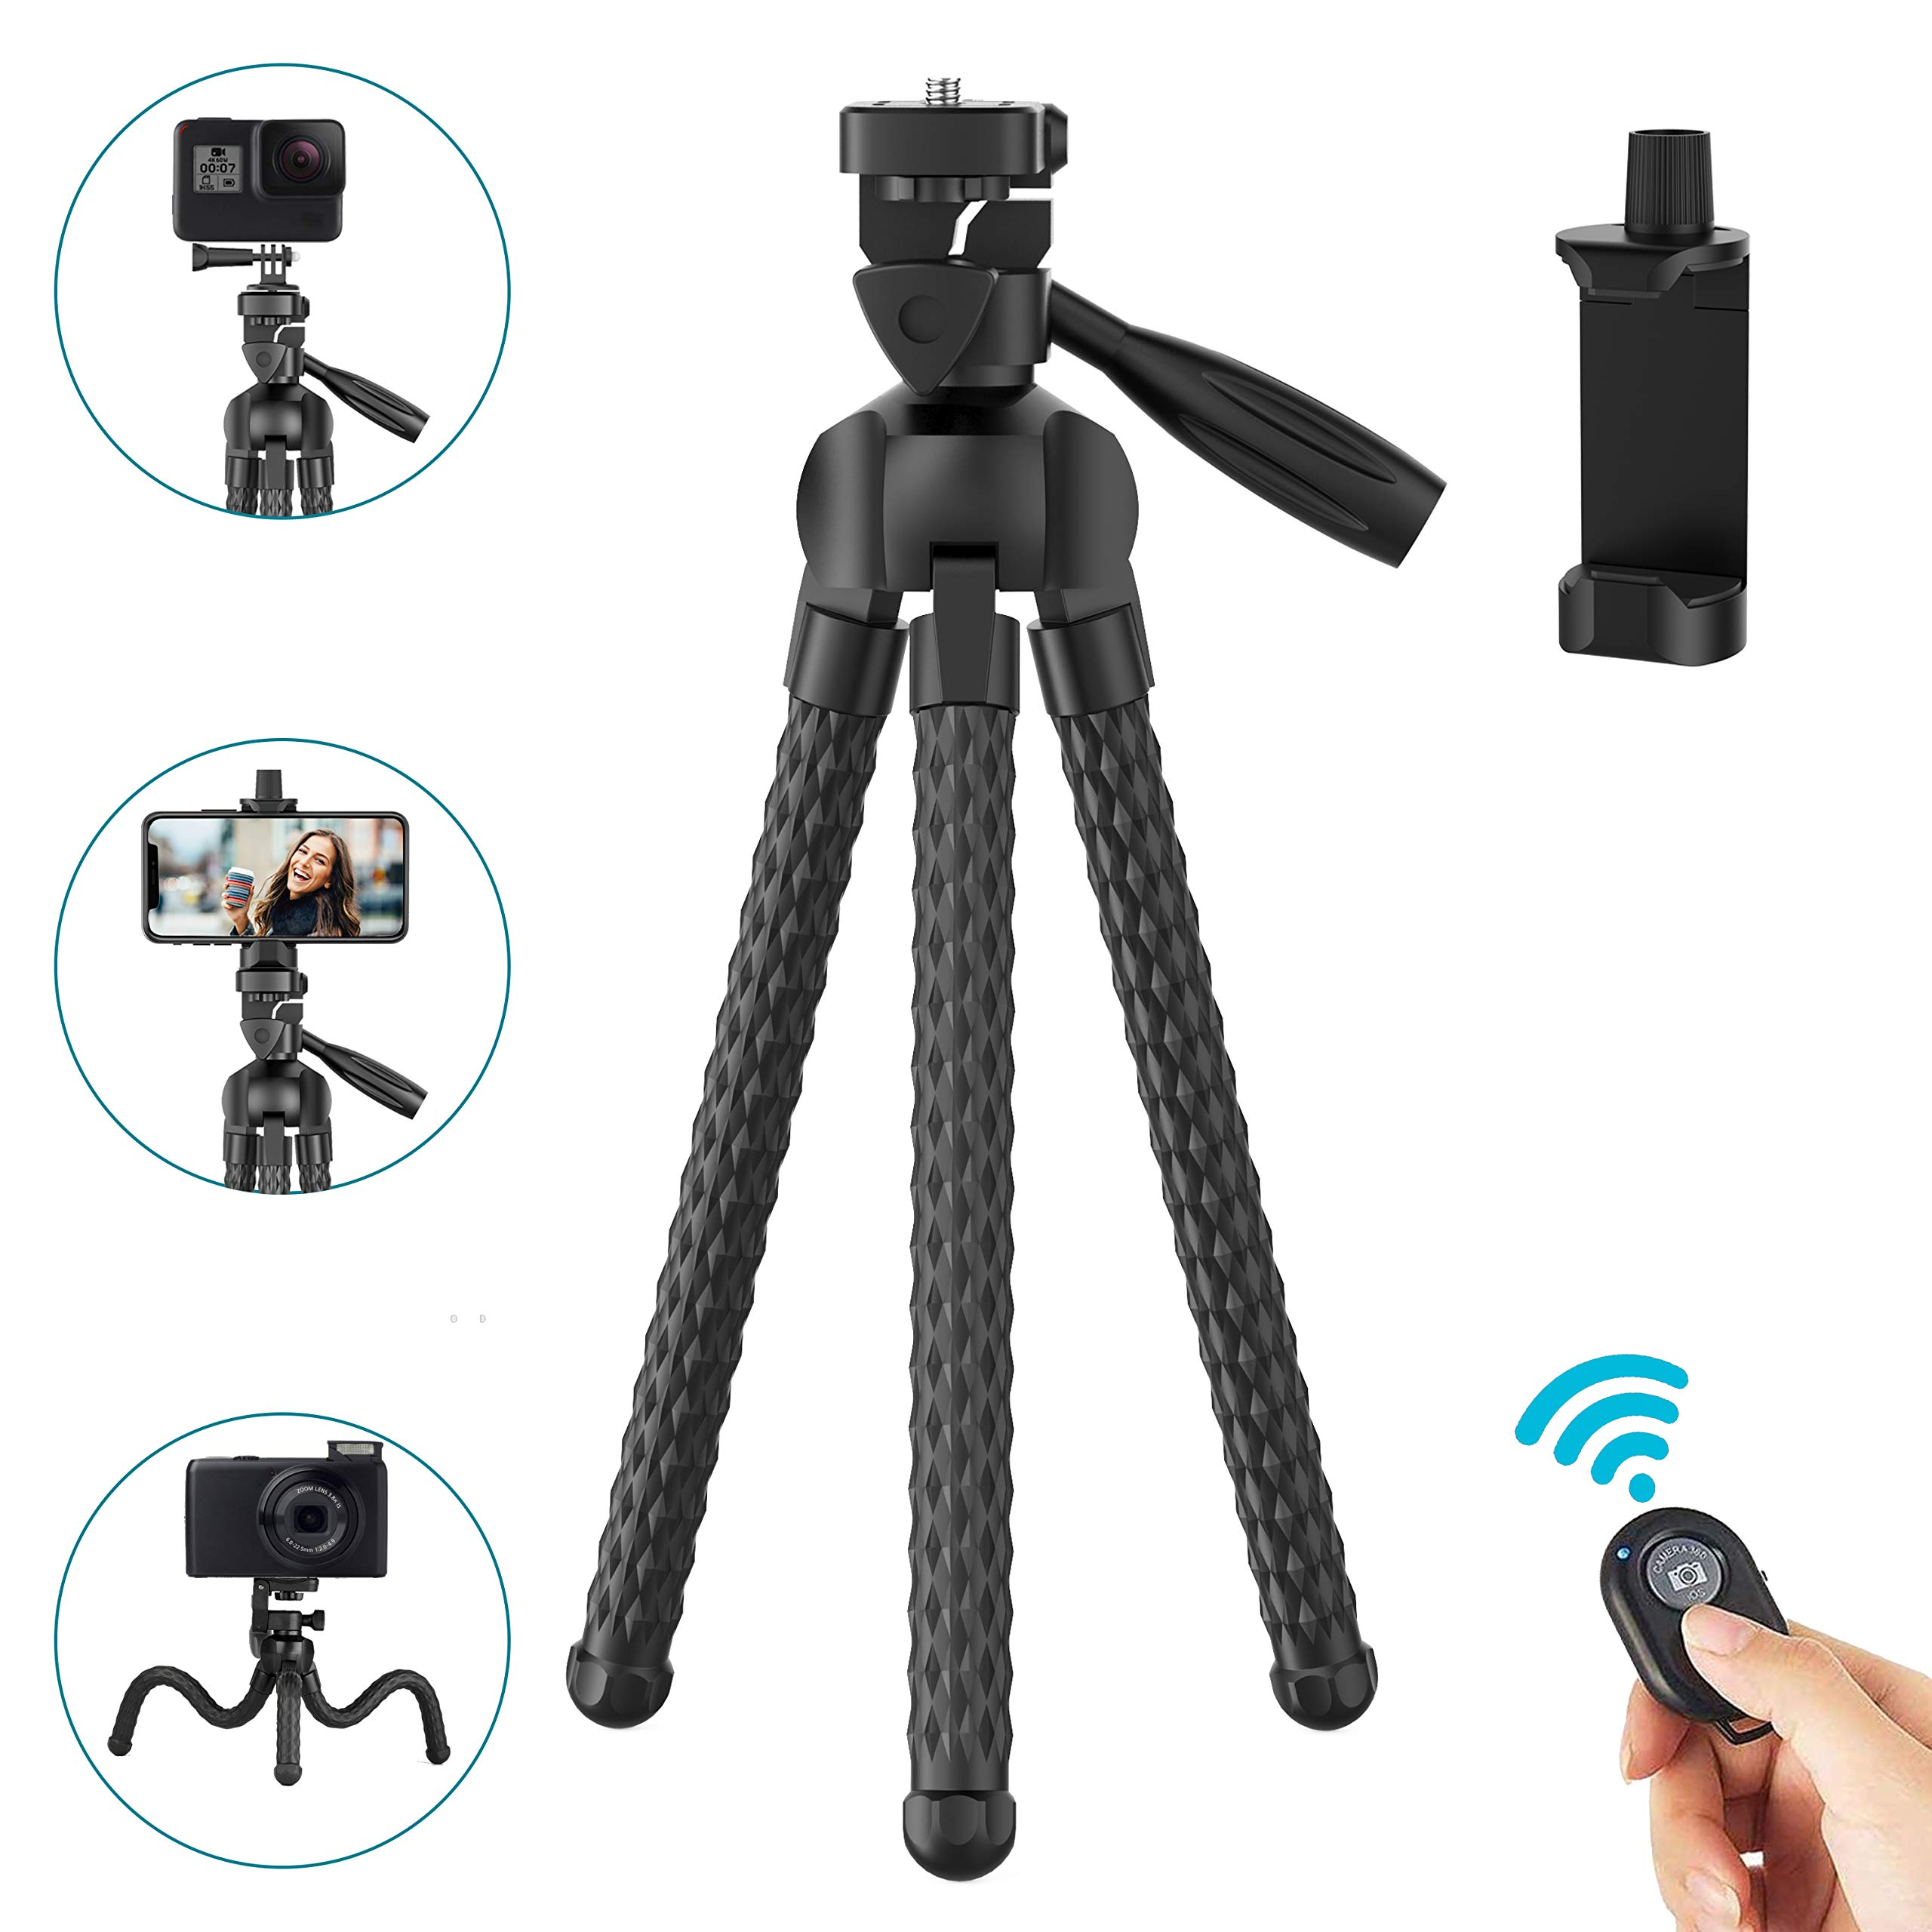 Upgraded Flexible Wireless Universal Compatible